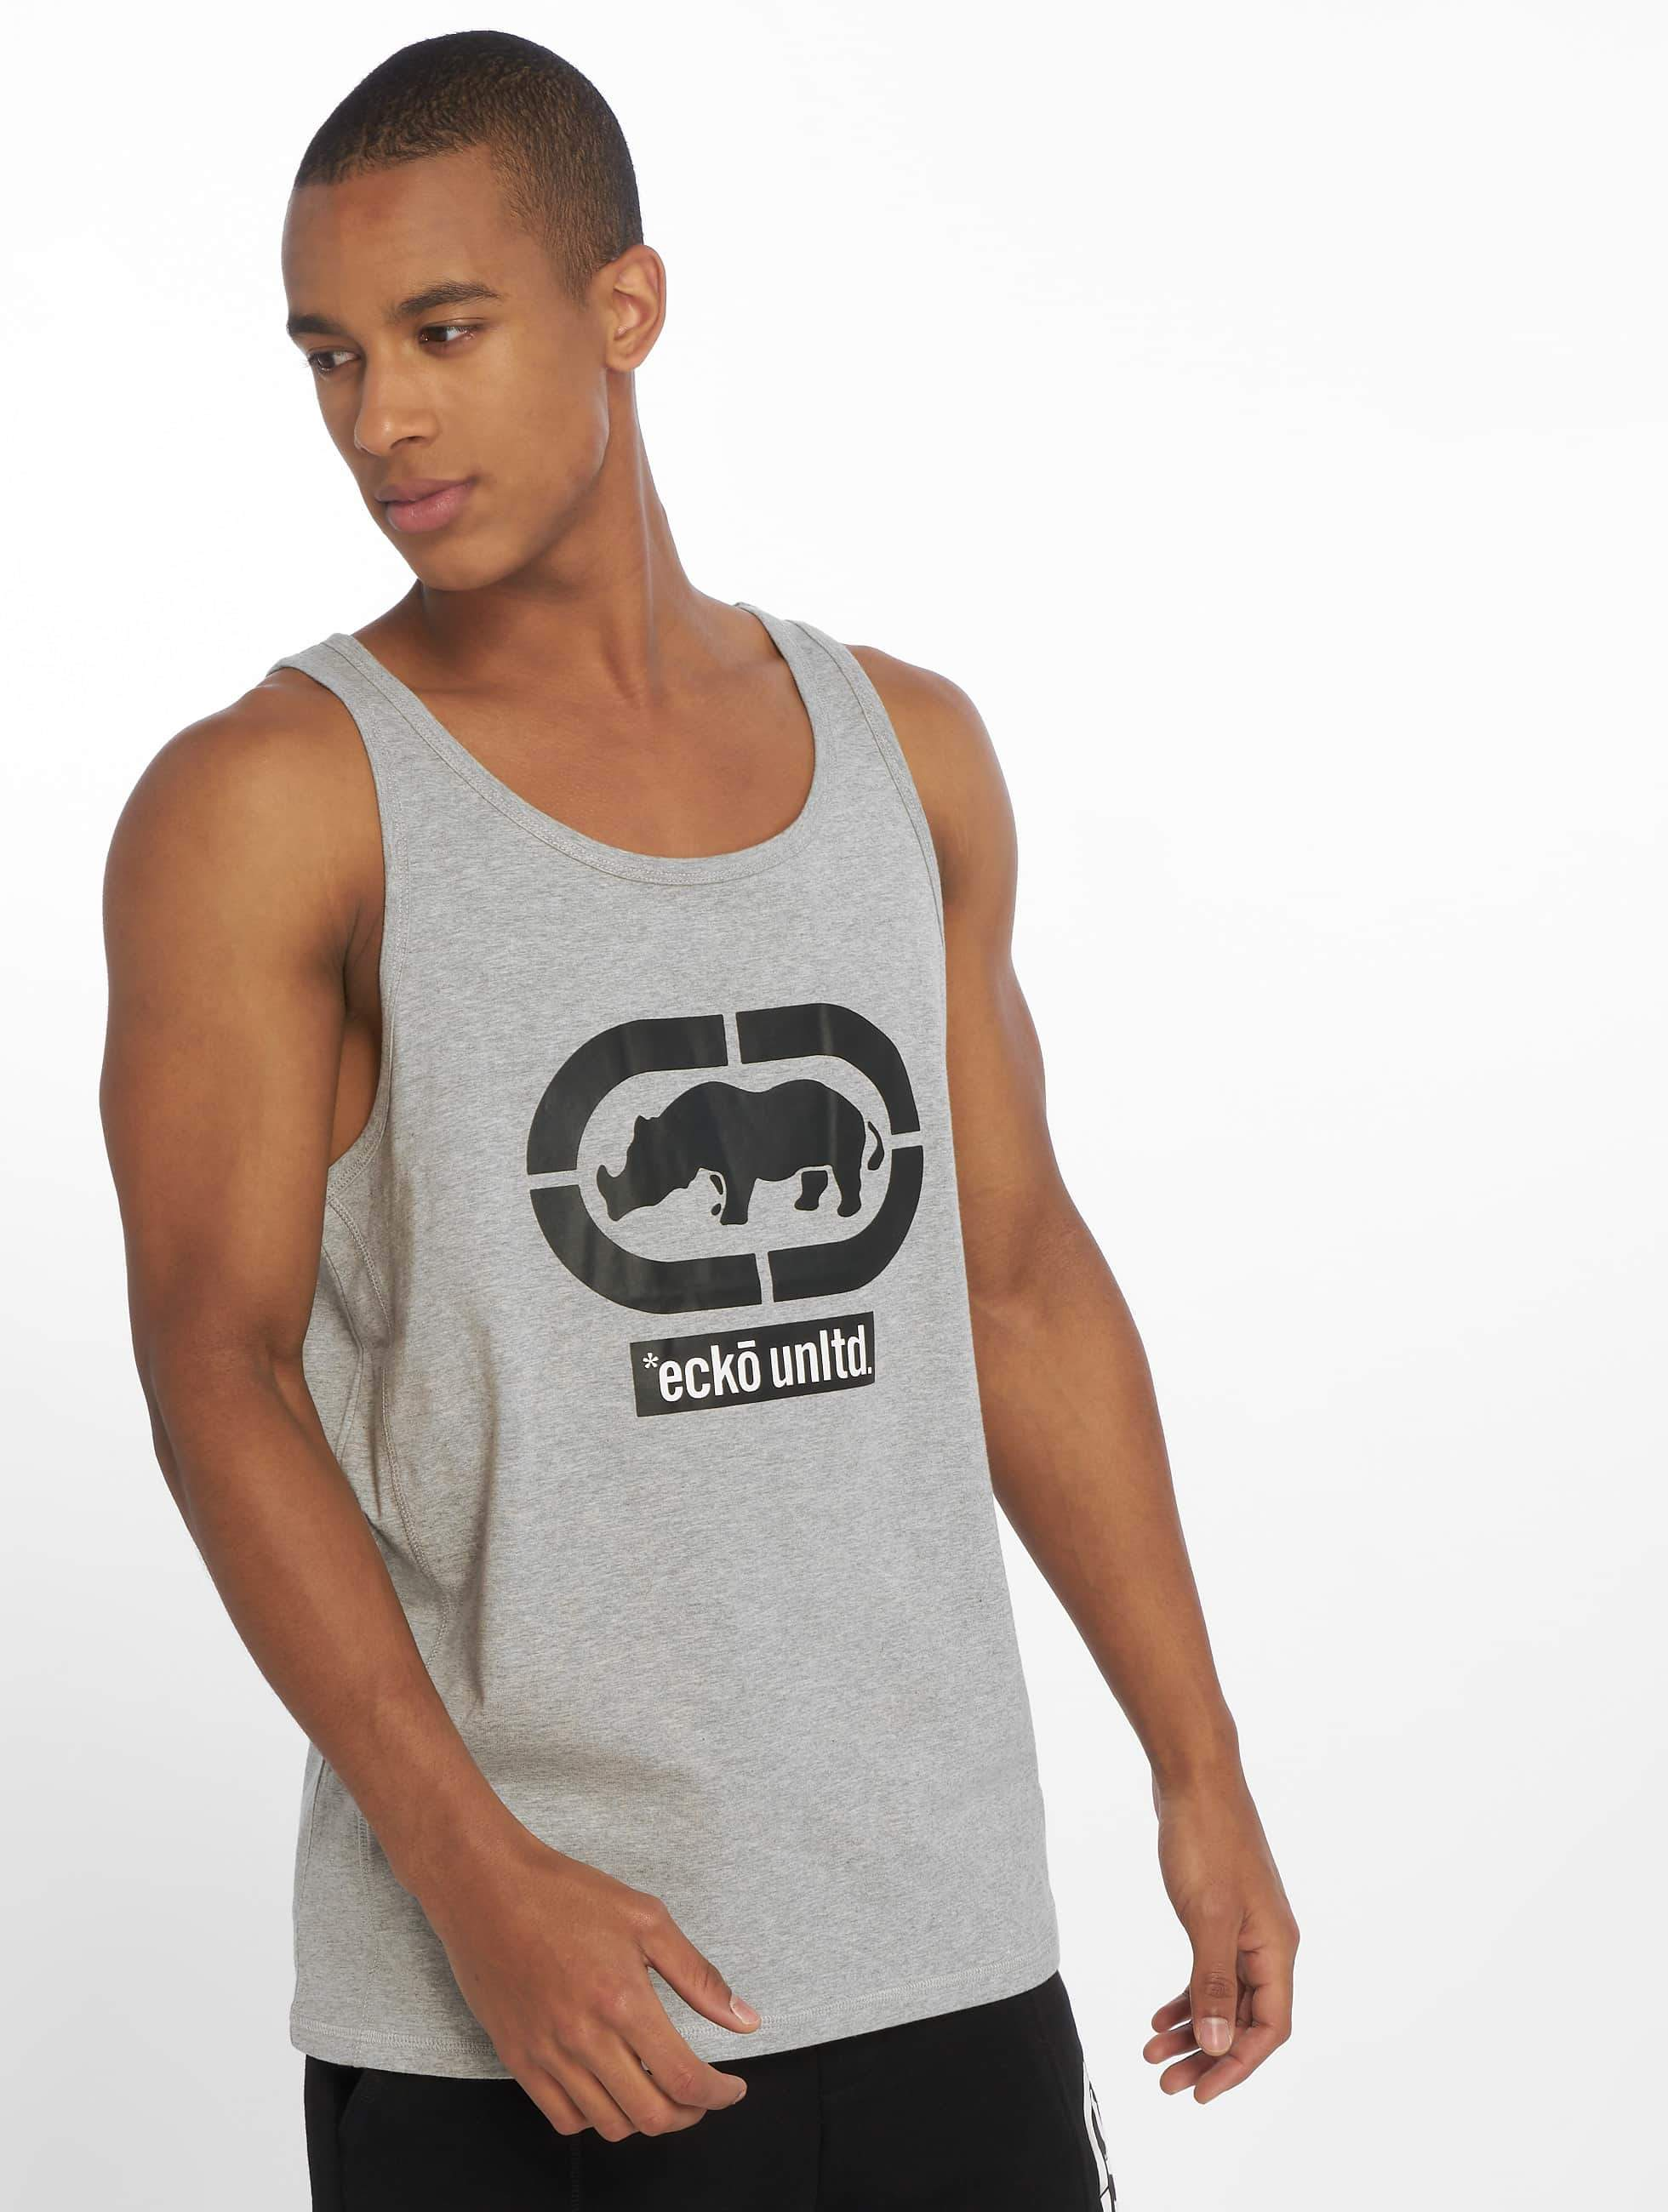 Ecko Unltd. / Tank Tops Humphreys in grey XL